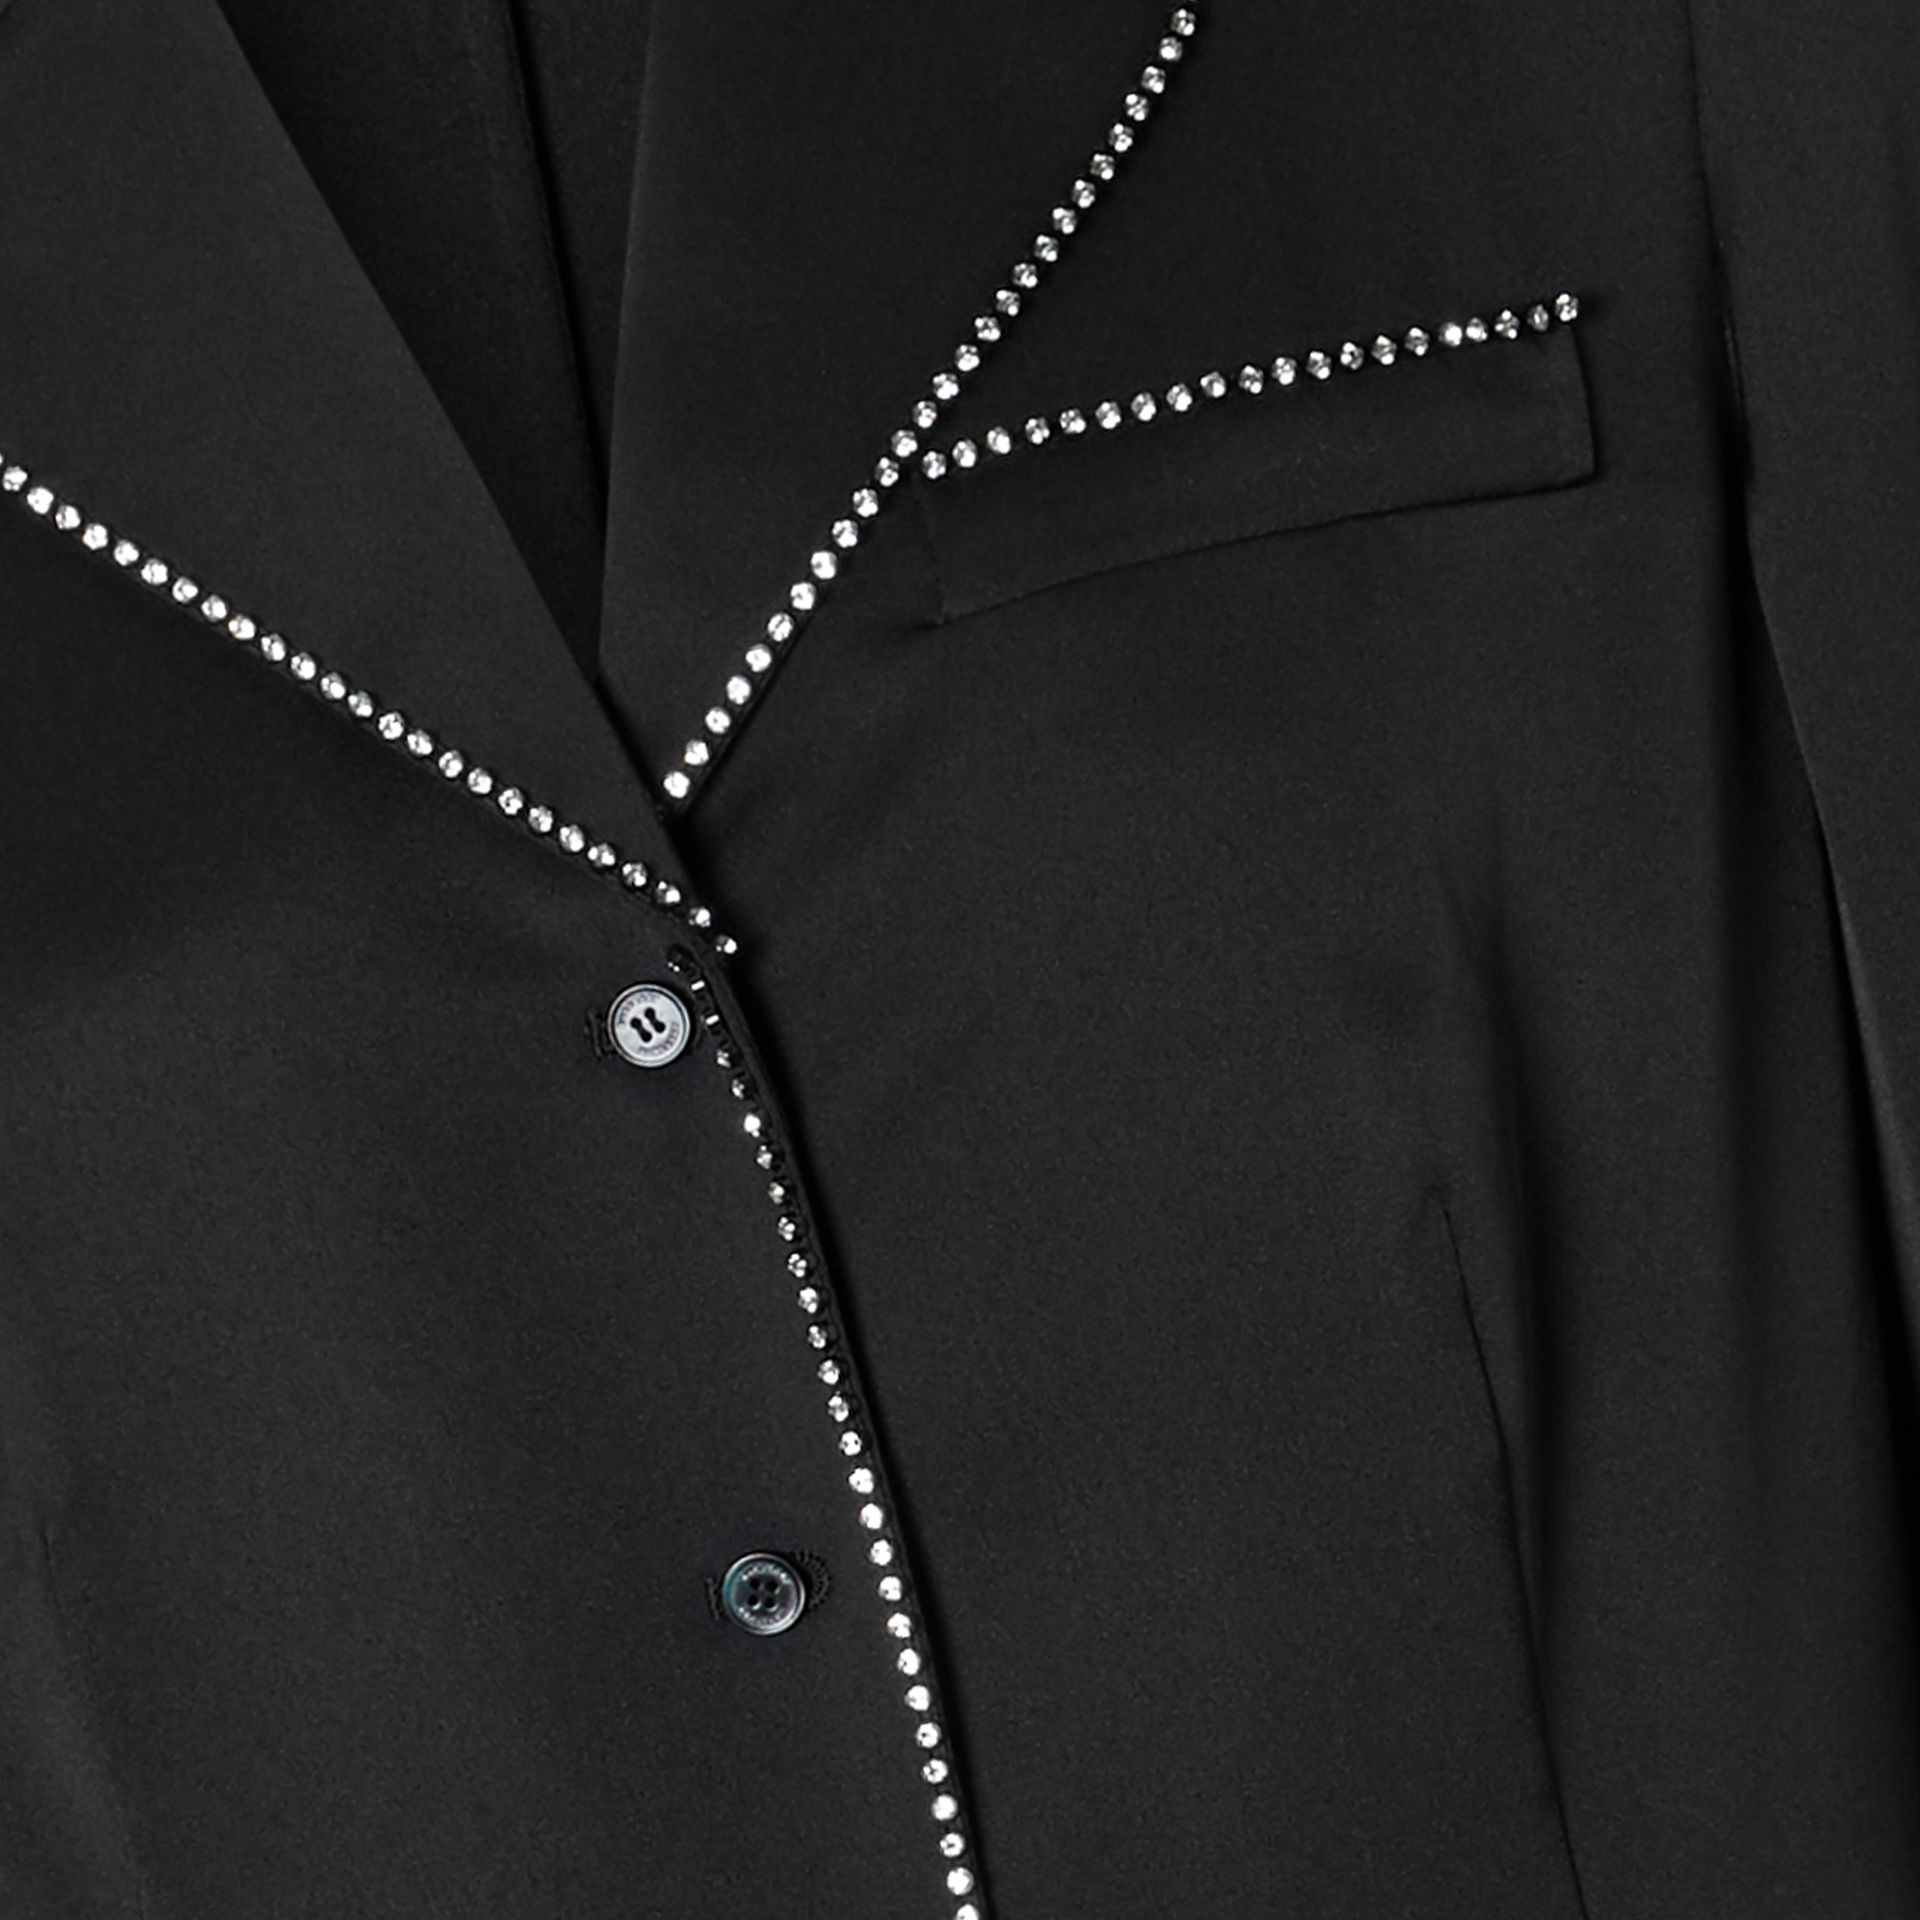 Embellished Silk Shirt in Black - Women | Burberry Australia - gallery image 1